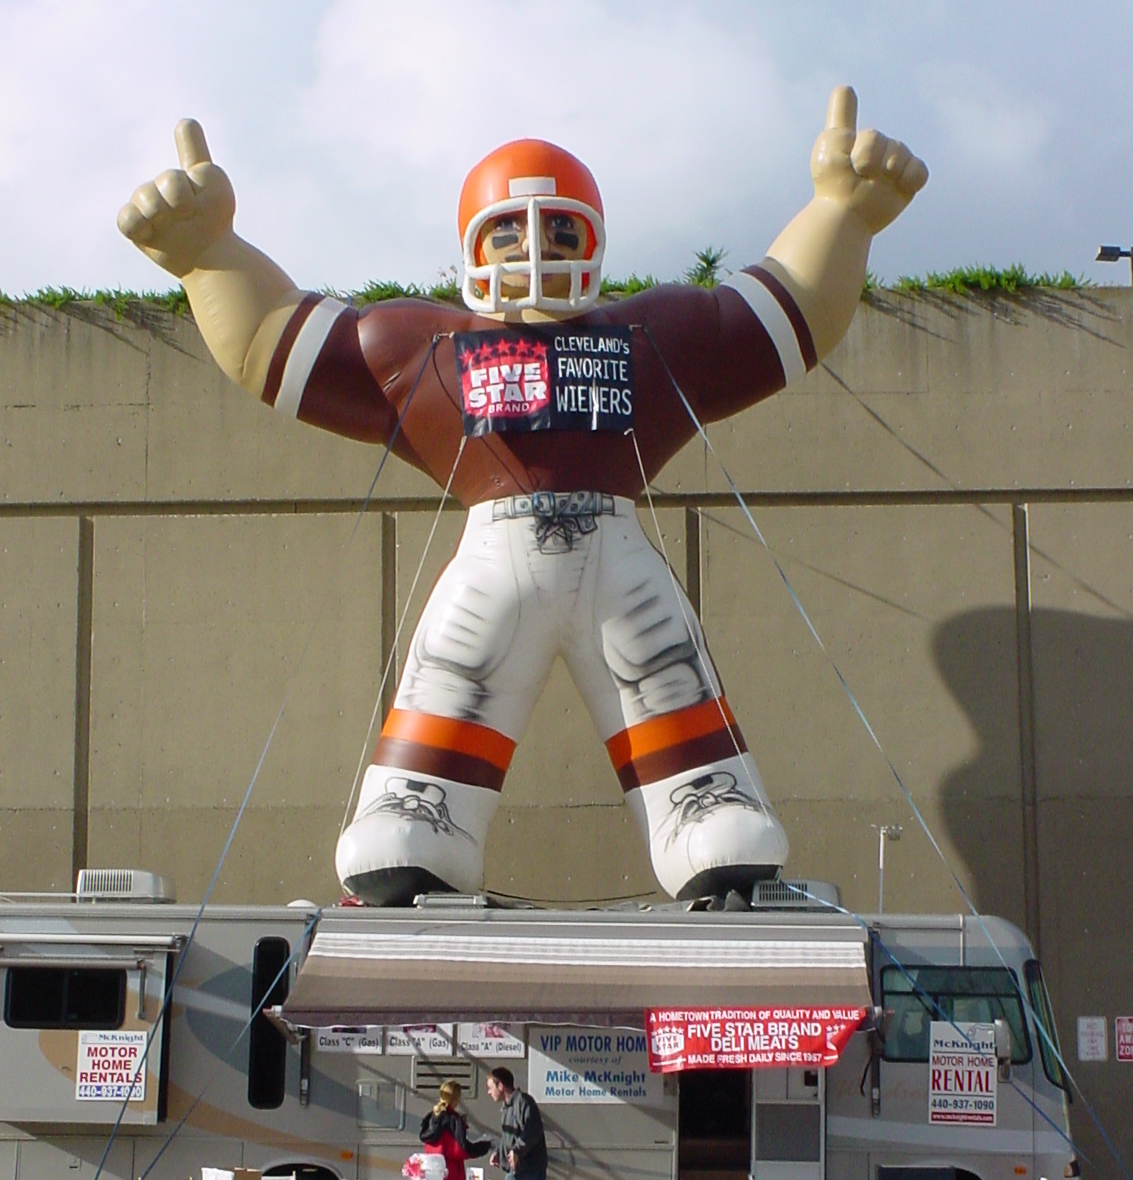 Cleveland Browns Five Star Tailgate